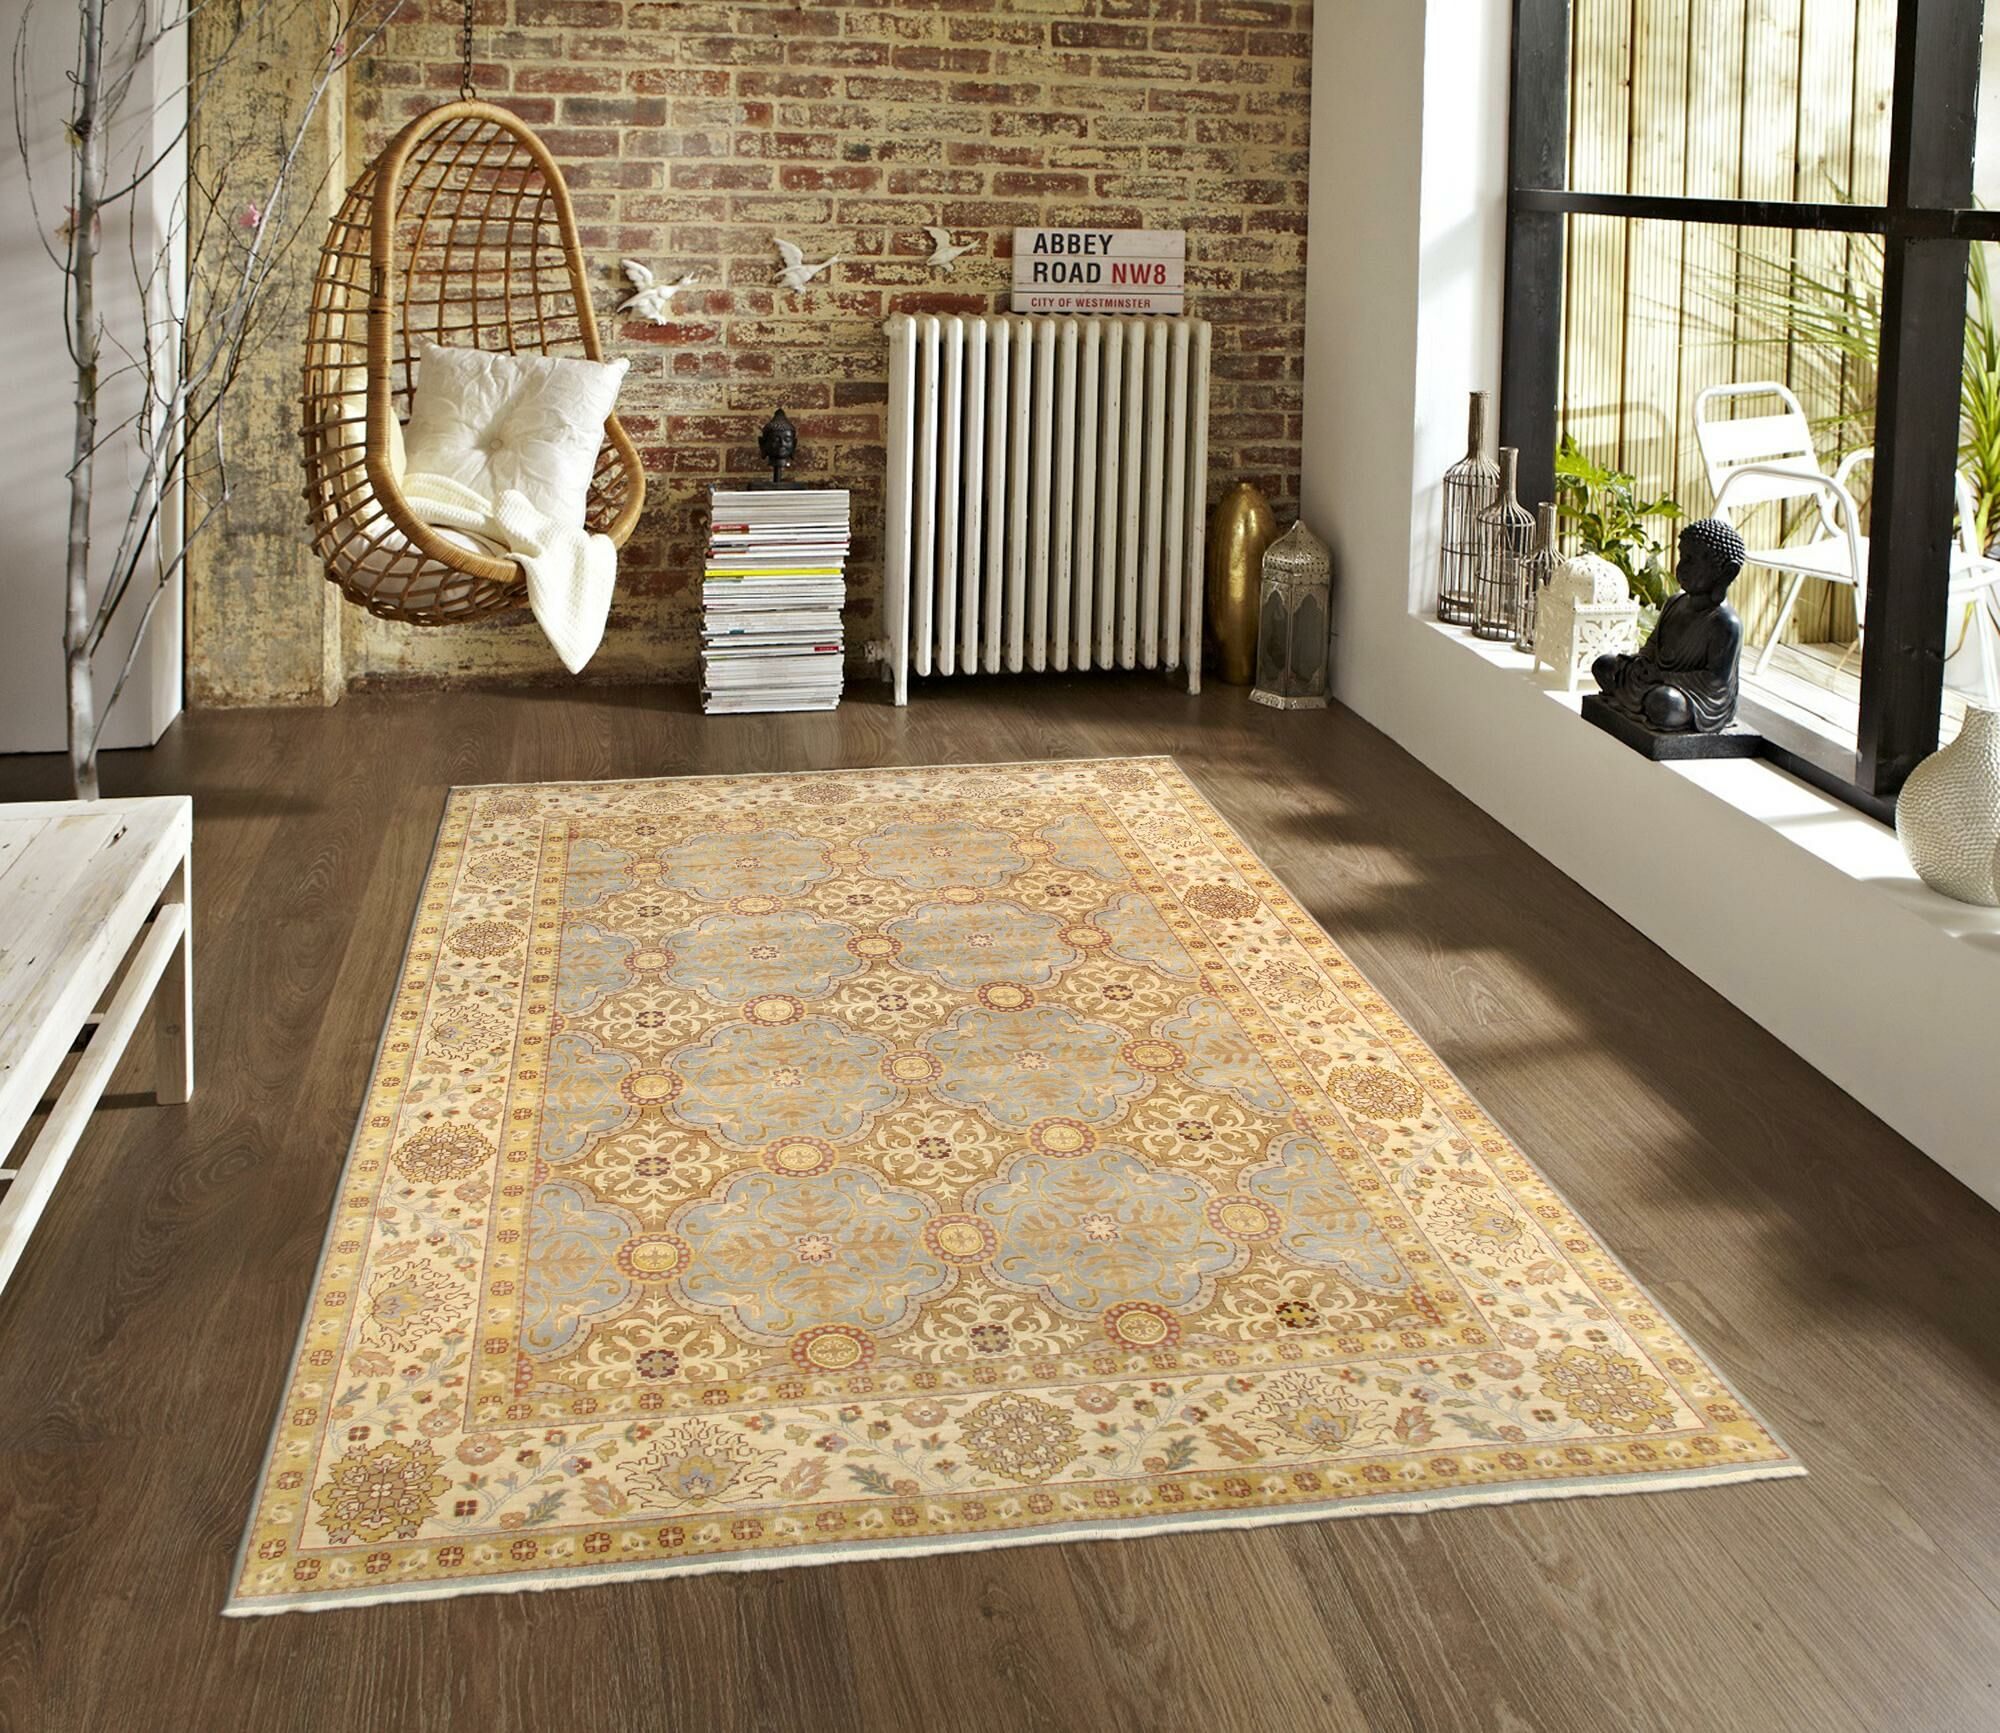 Sultanabad Handknotted Wool Beige Area Rug Rug Size: Square 12' x 12'